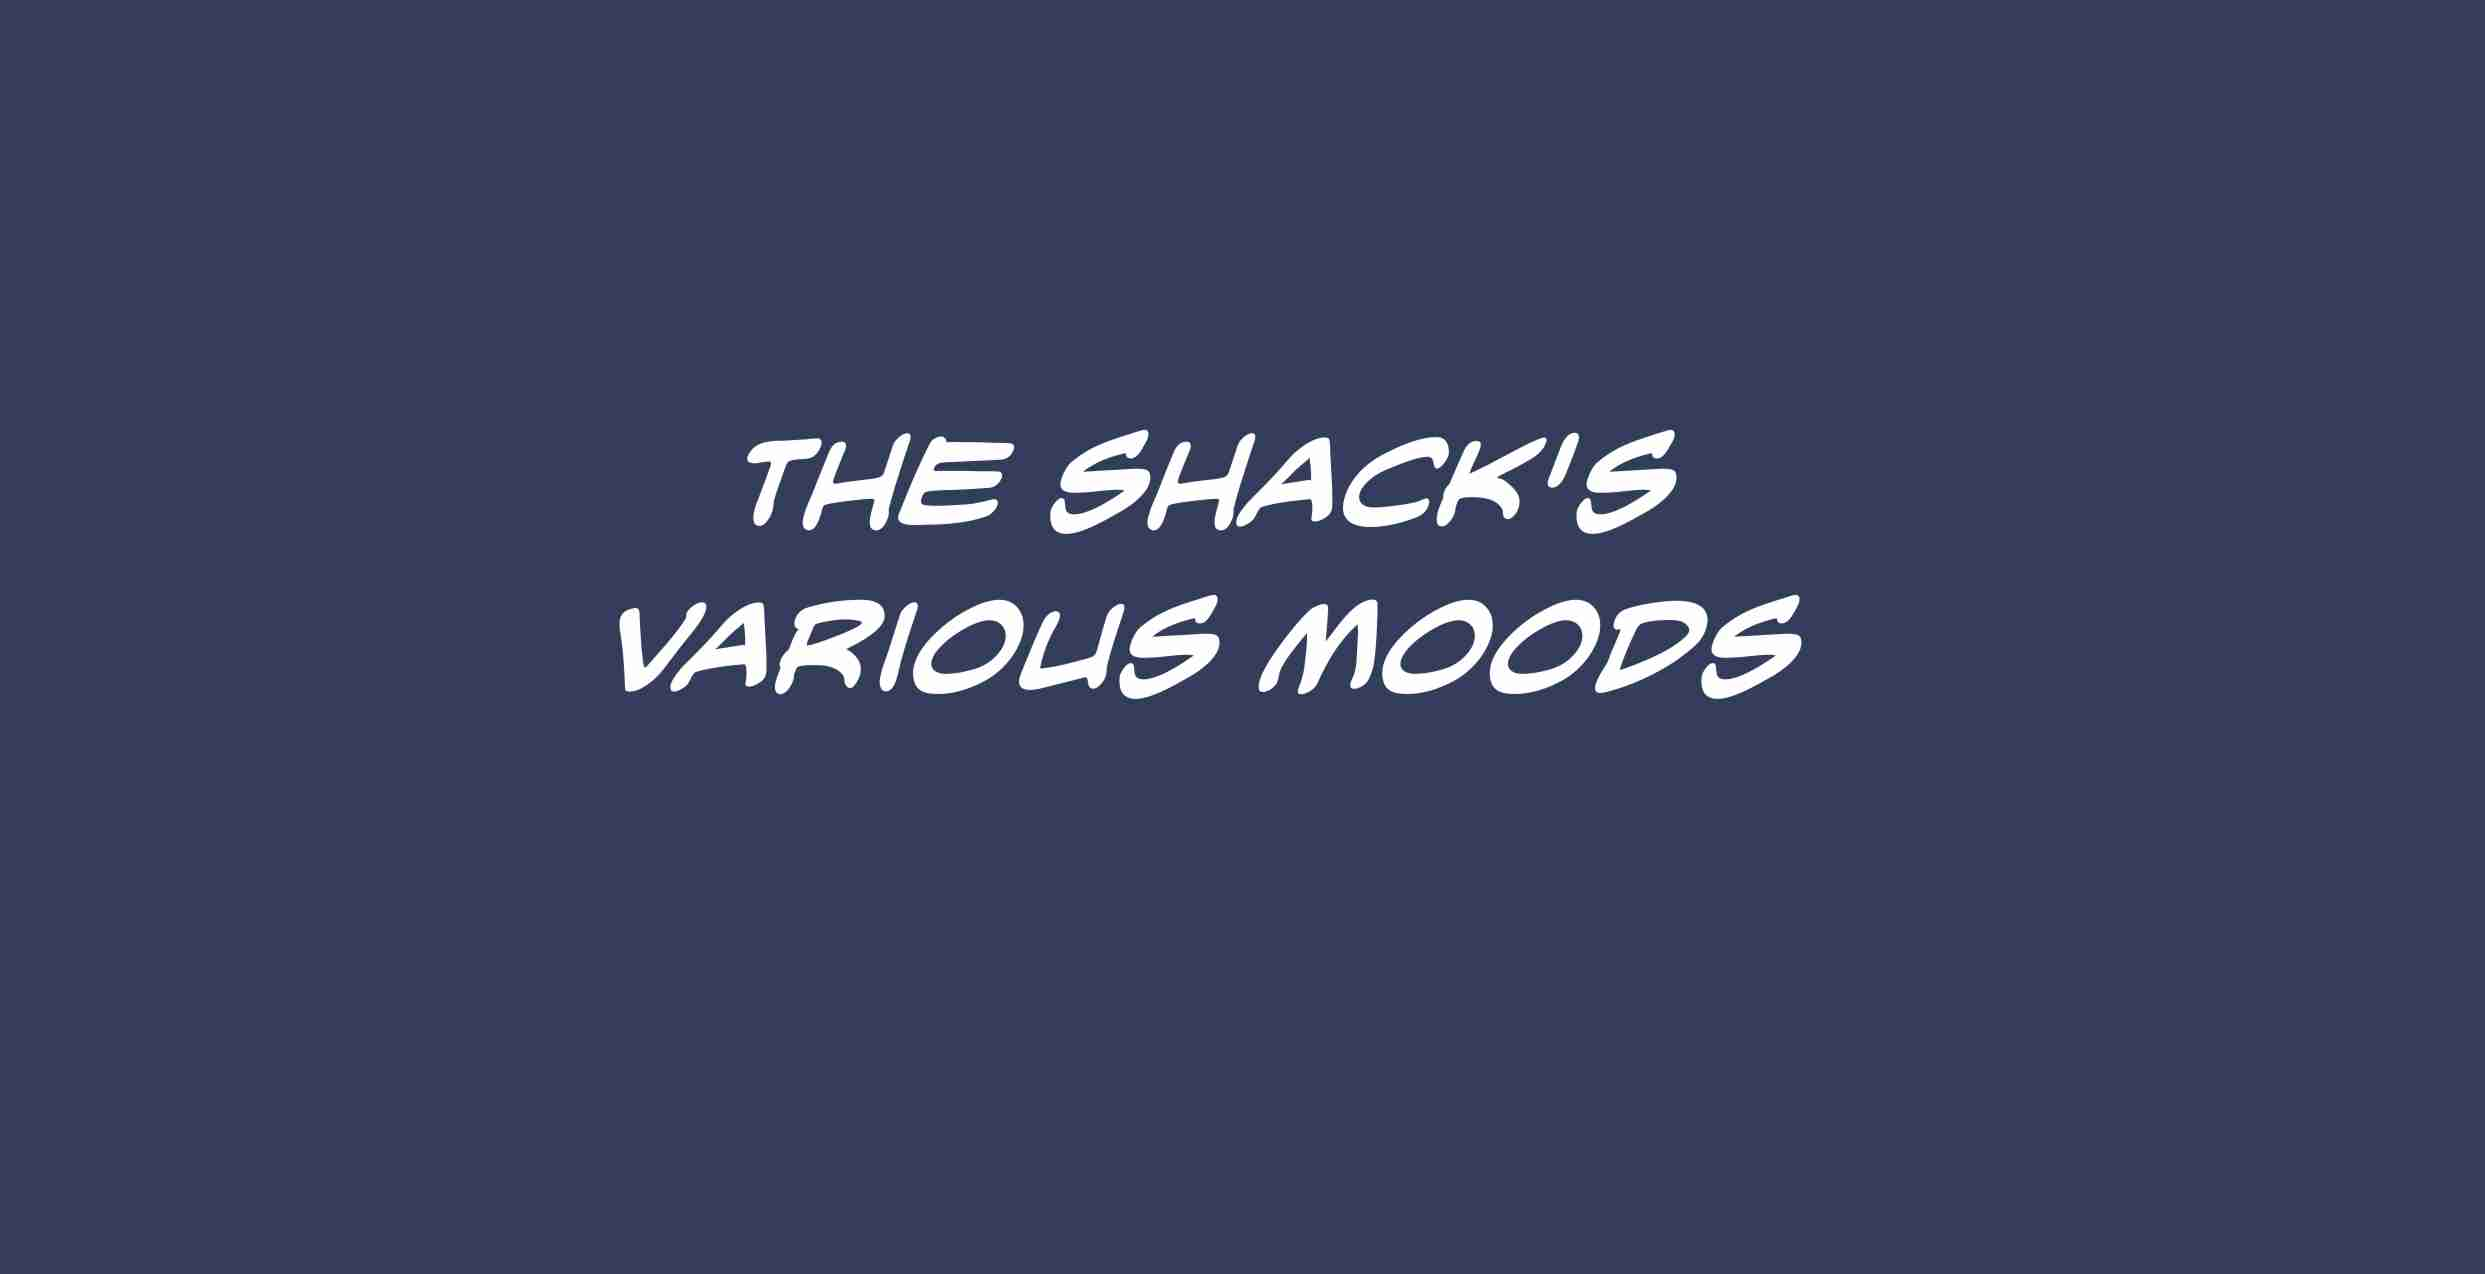 The shack in its various moods